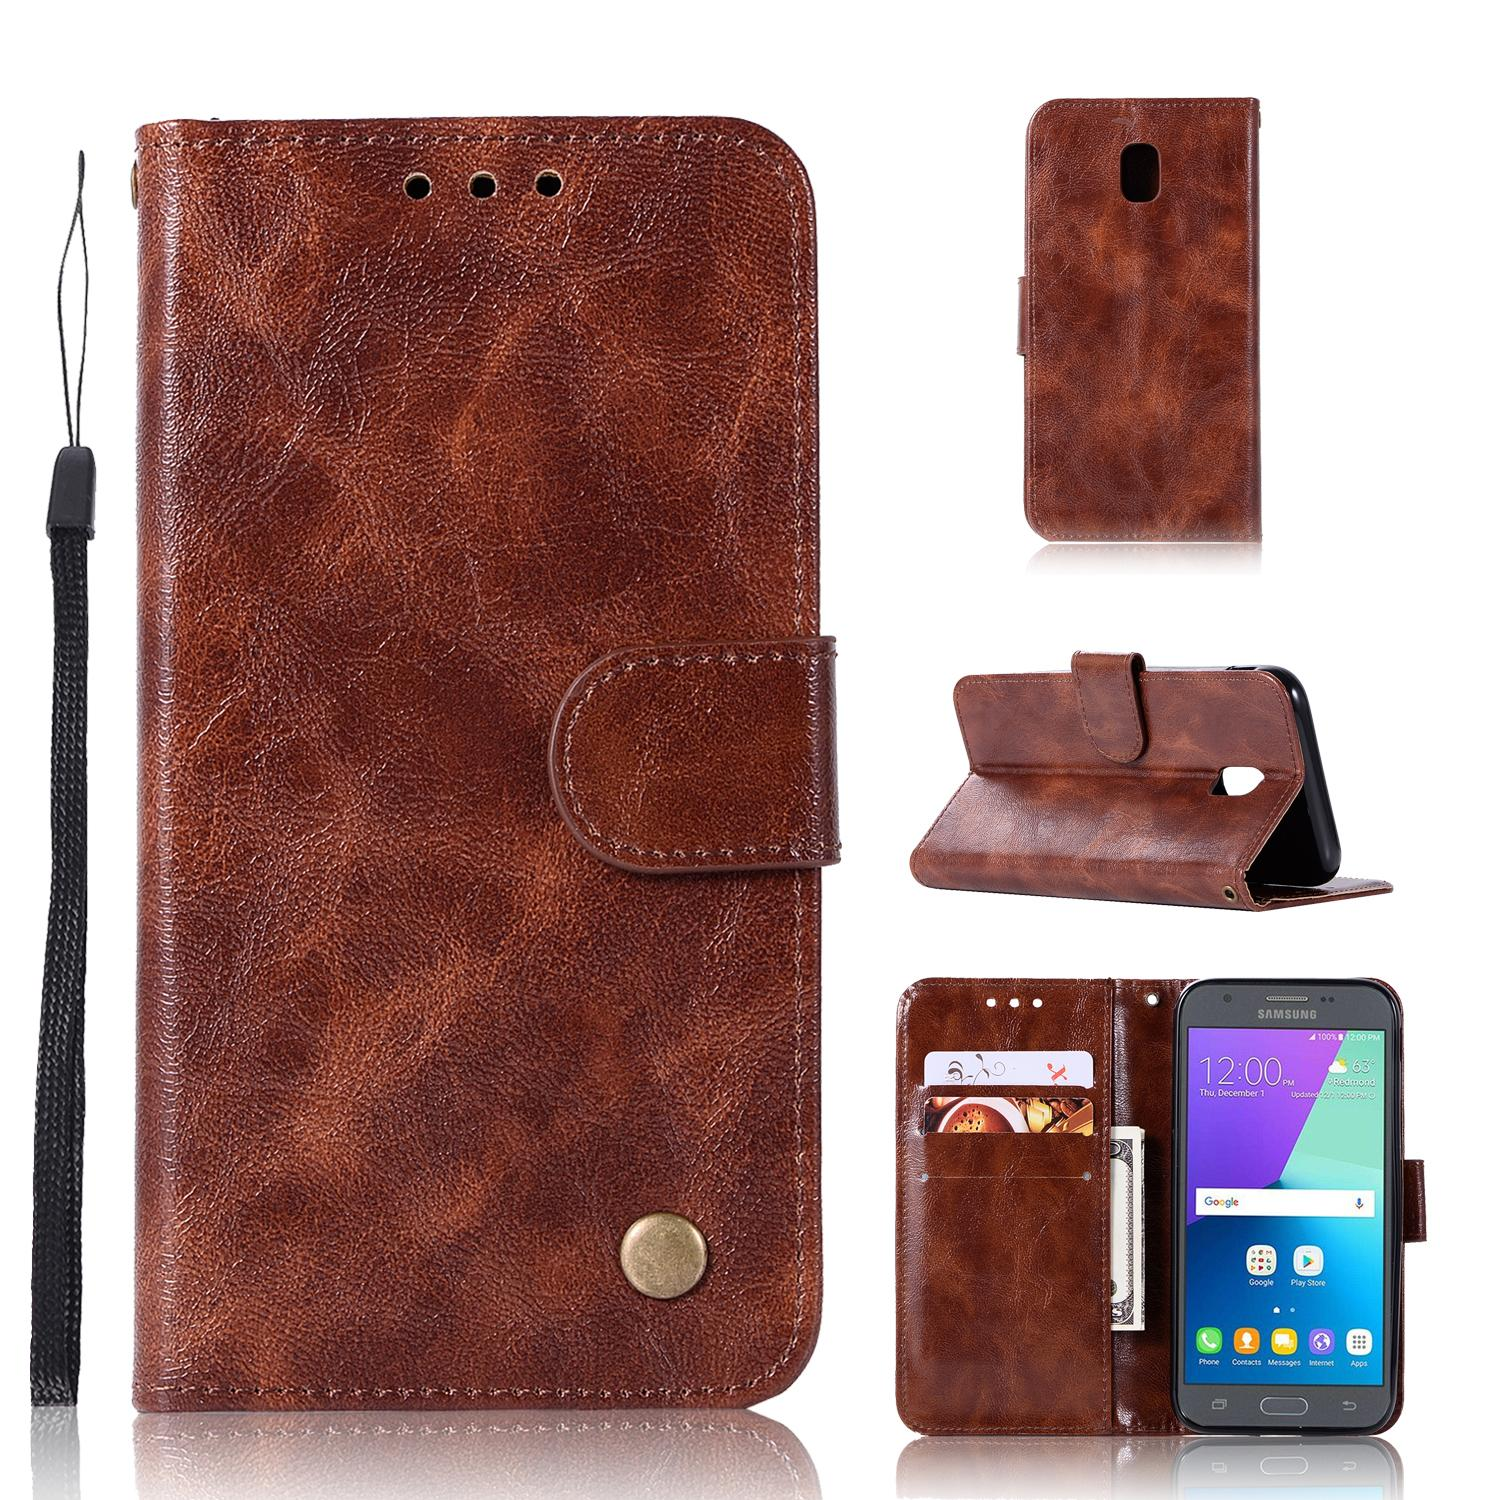 Casing For Samsung Galaxy J7 2017 (european) / J730 / J7 Pro 2017,reto Leather Wallet Case Magnetic Double Card Holder Flip Cover By Life Goes On.